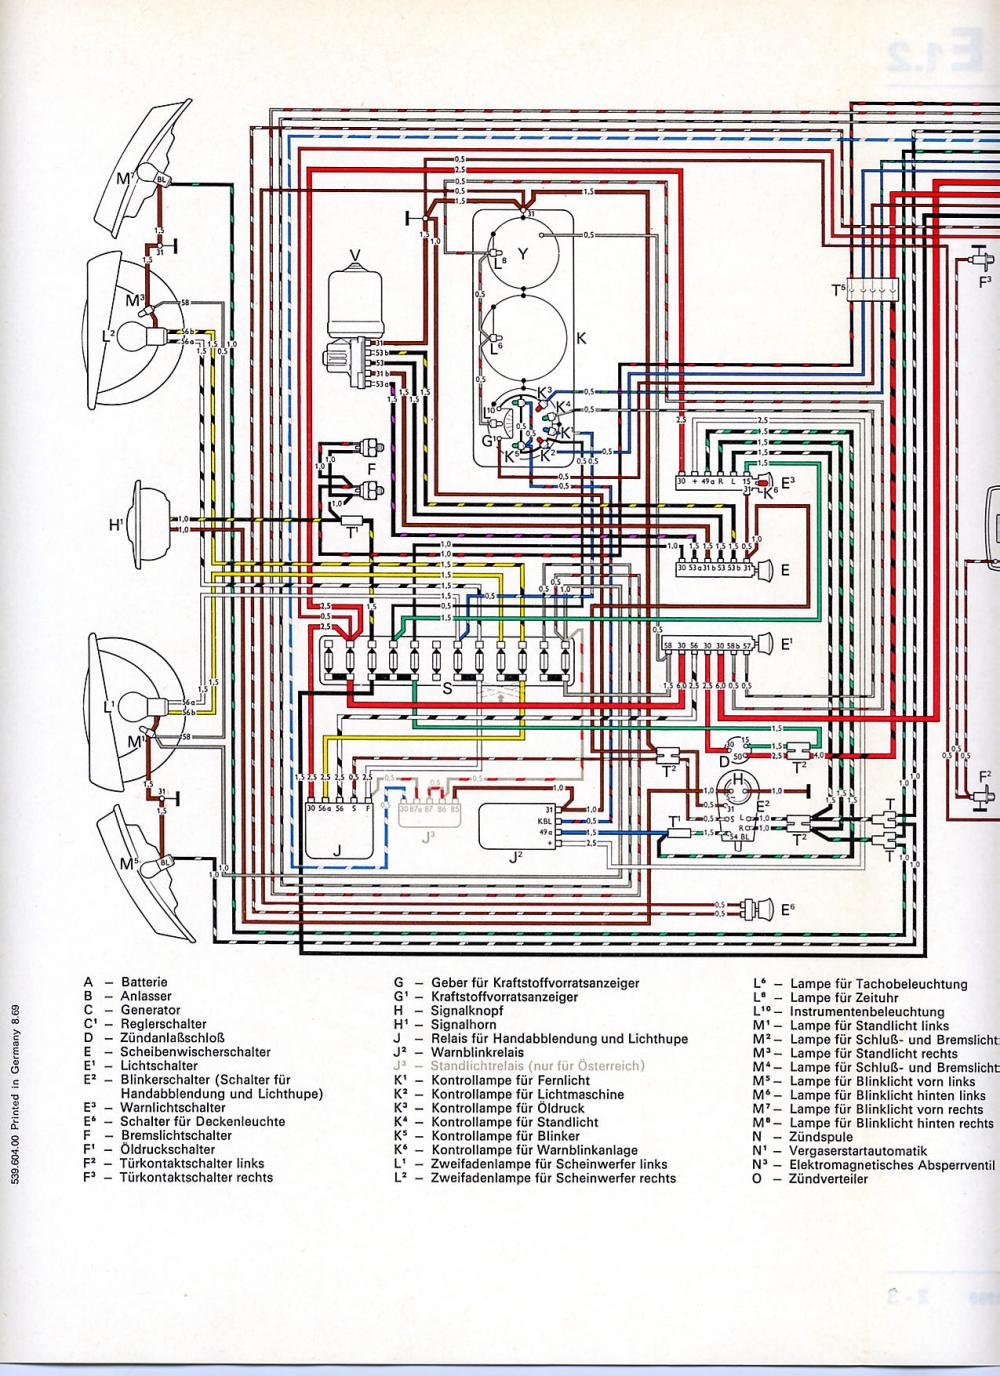 medium resolution of 2000 vw eurovan fuse box diagram wiring library1997 vw eurovan wiring diagram detailed schematics diagram rh